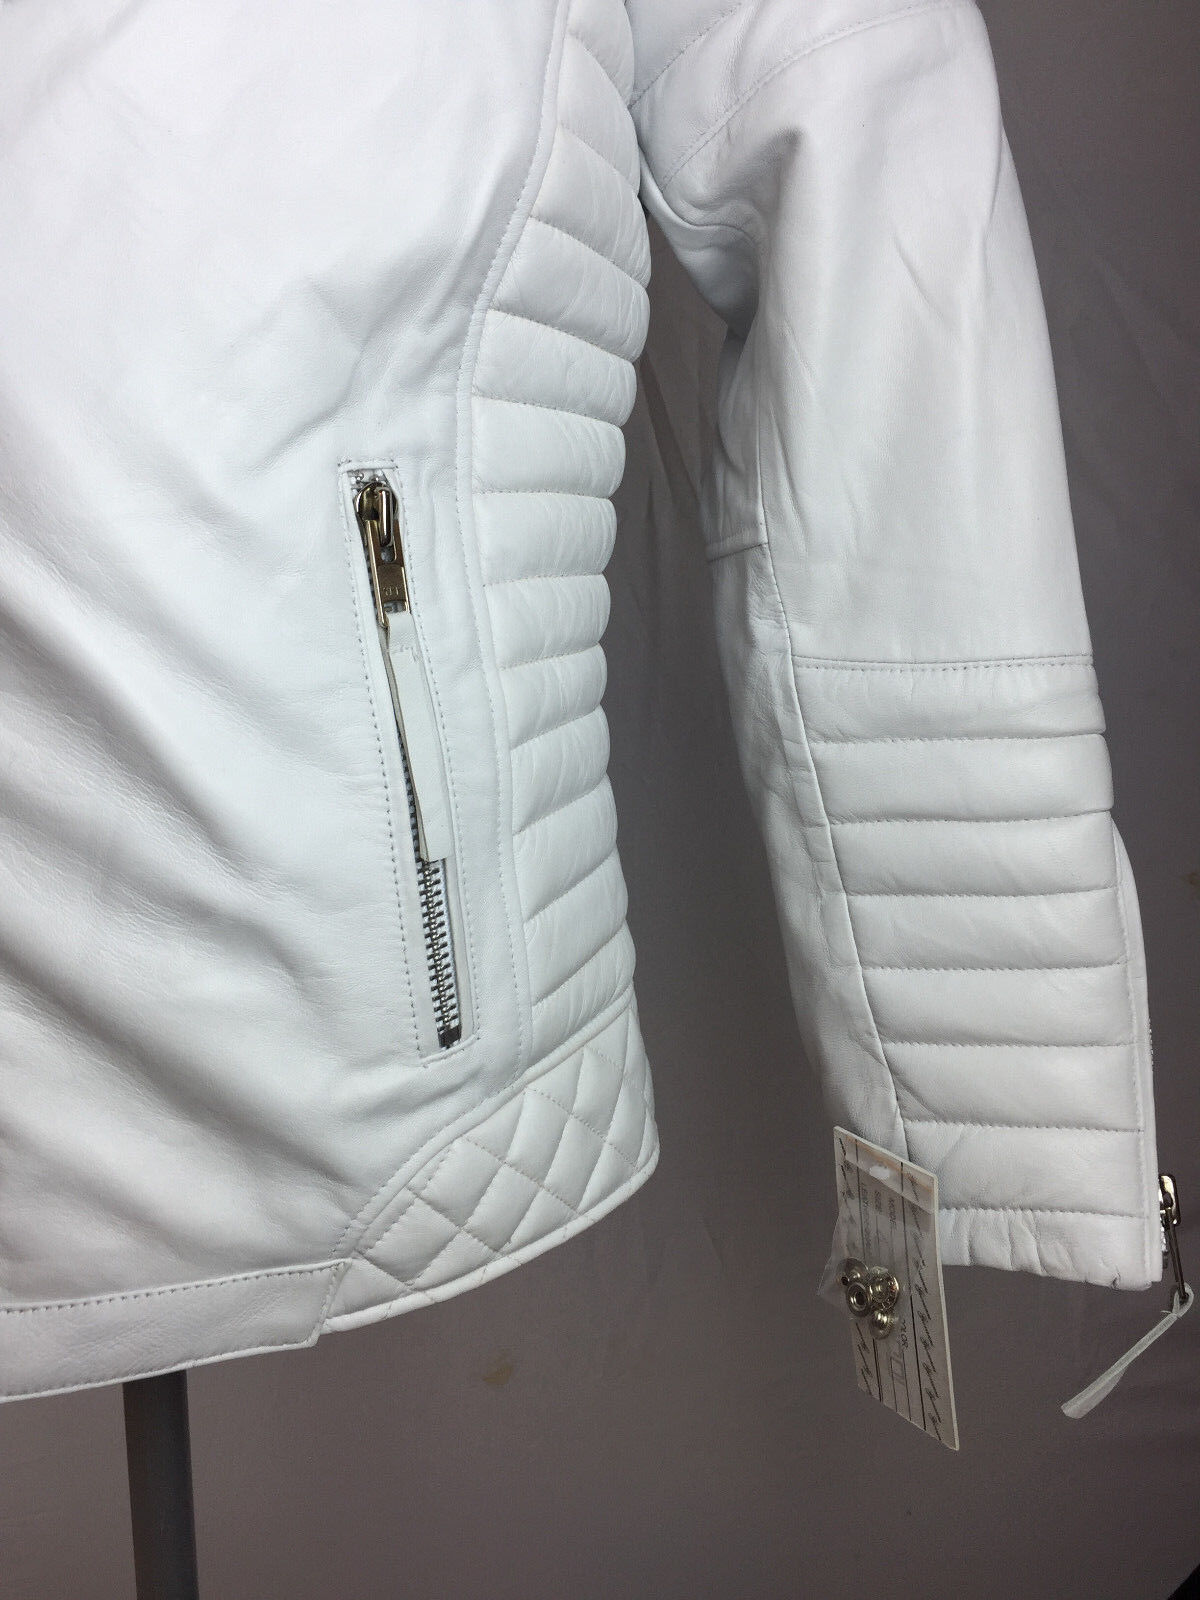 bf10e626d Мужская верхняя одежда MENS GENUINE LAMBSKIN LEATHER BIKER JACKET  MOTORCYCLE STYLE WHITE (ALL SIZE) NWT